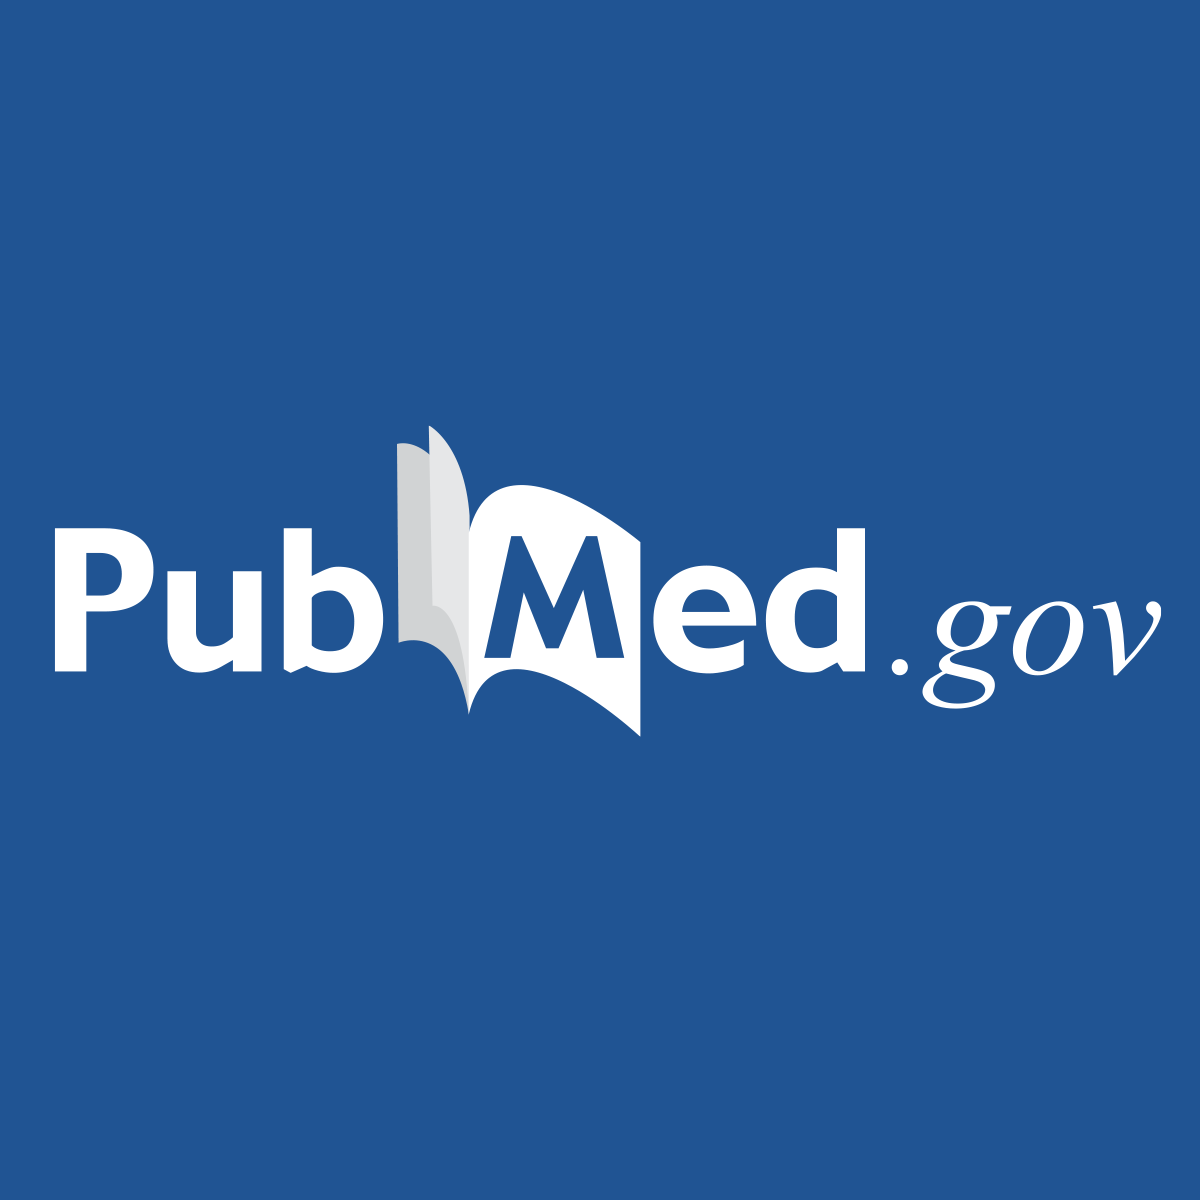 Effects of Glucose-Lowering on Outcome Incidence in Diabetes Mellitus and the Modulating Role of Blood Pressure and Other Clinical Variables: Overview, Meta-Analysis of Randomized Trials